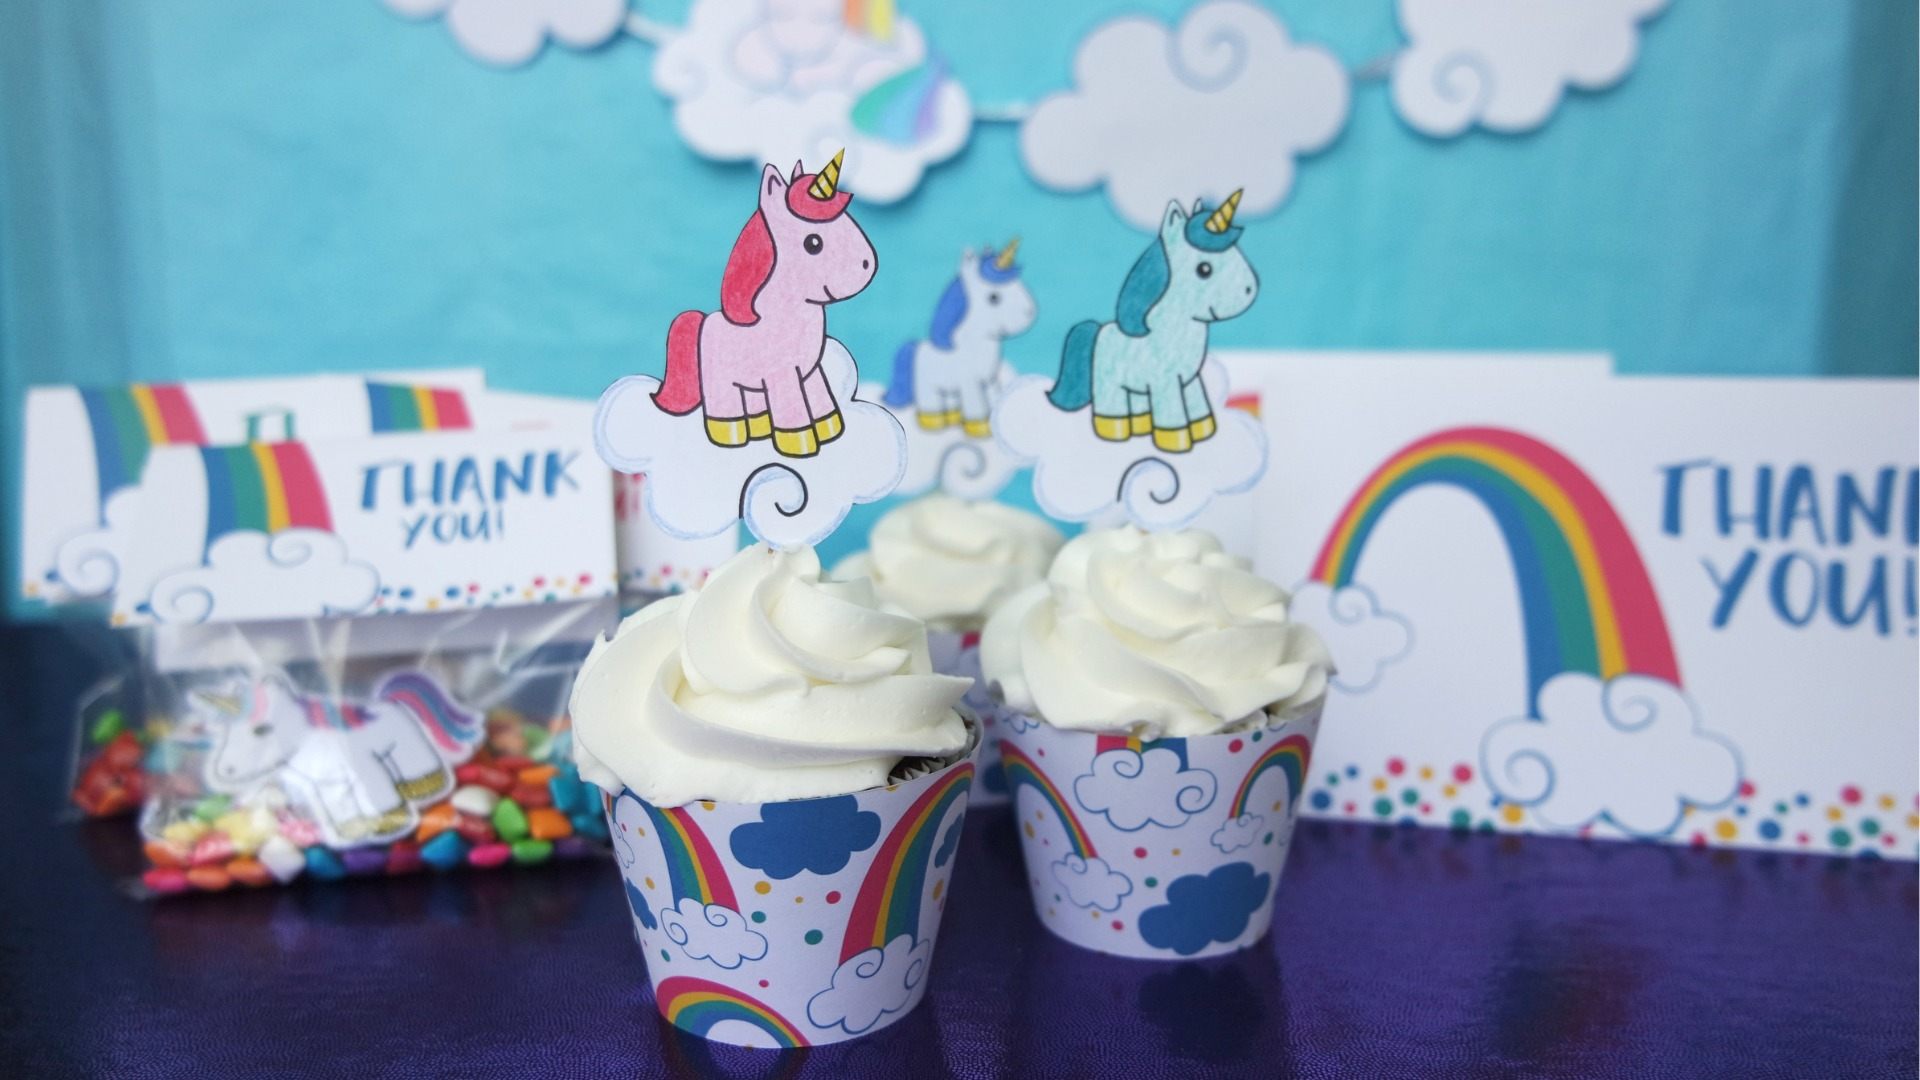 Free Unicorn Printables - rainbow unicorn themed cupcake wrappers, toppers, party favor tags, and thank you card downloads // unicorn party favors, rainbow unicorn thank you card, unicorn cupcake toppers #toddlerbirthday #unicornparty #unicornbirthday #rainbowparty #rainbowbirthday #rainbowunicorn